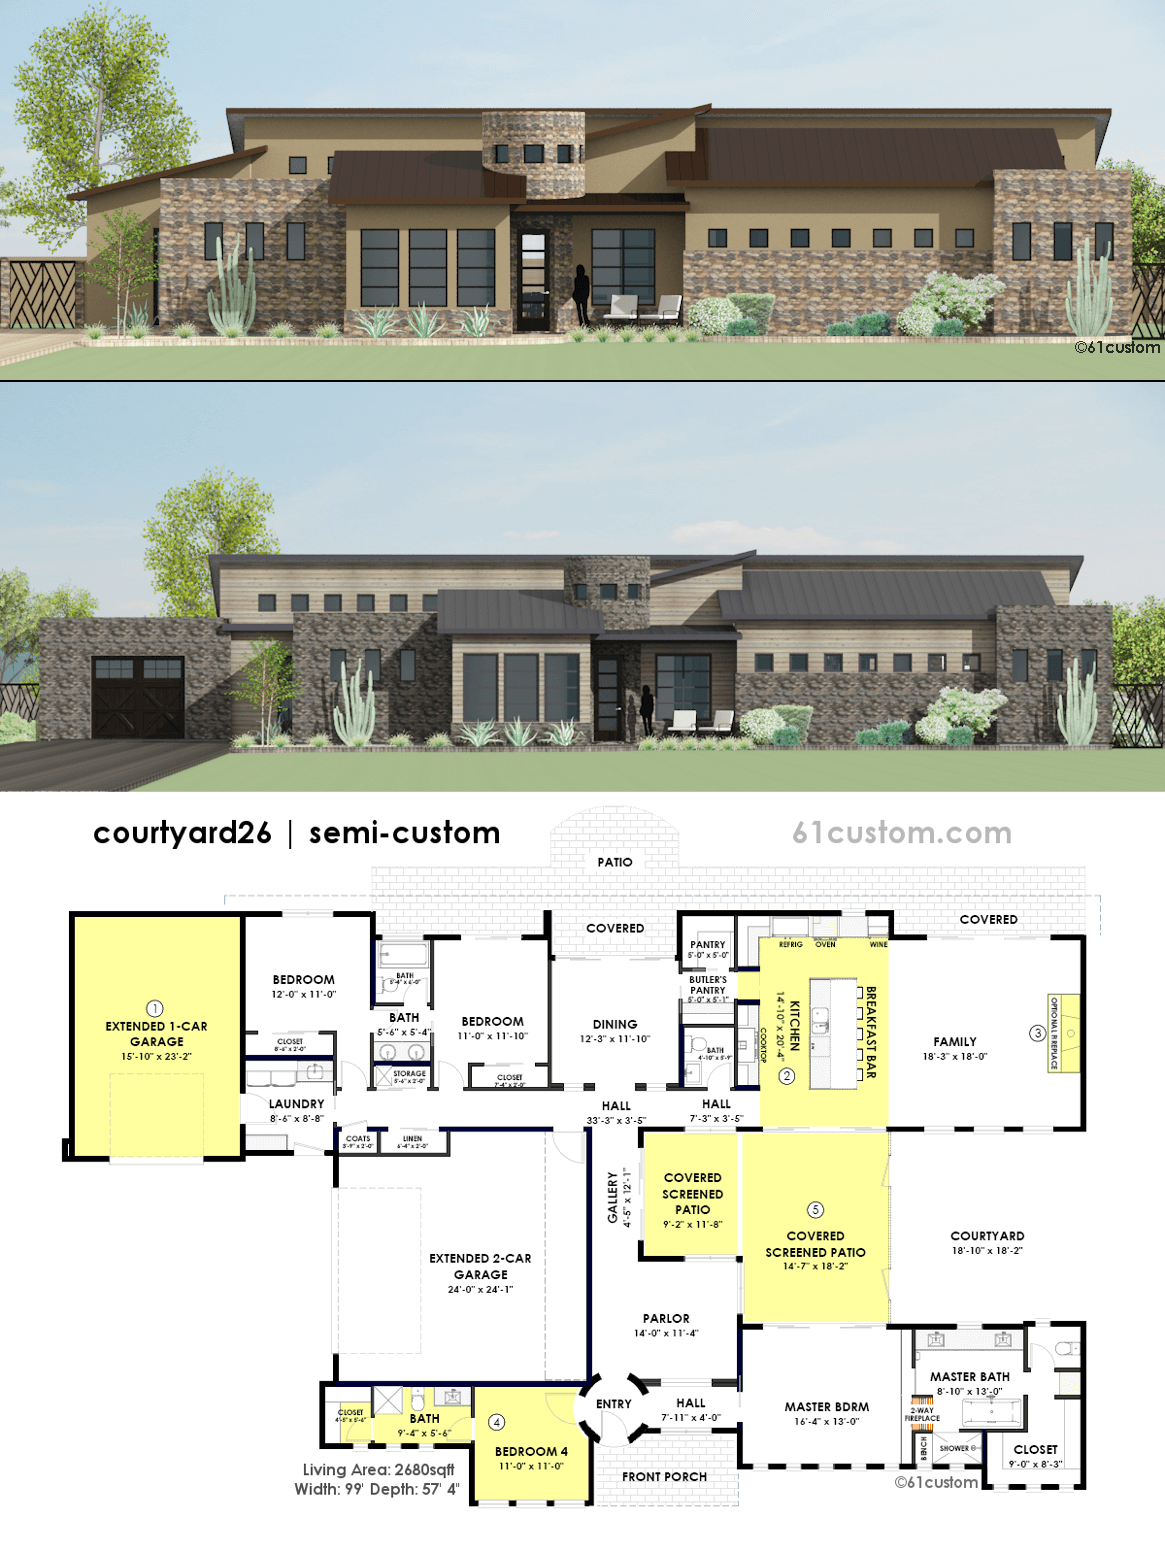 contemporary courtyard house plan 61custom